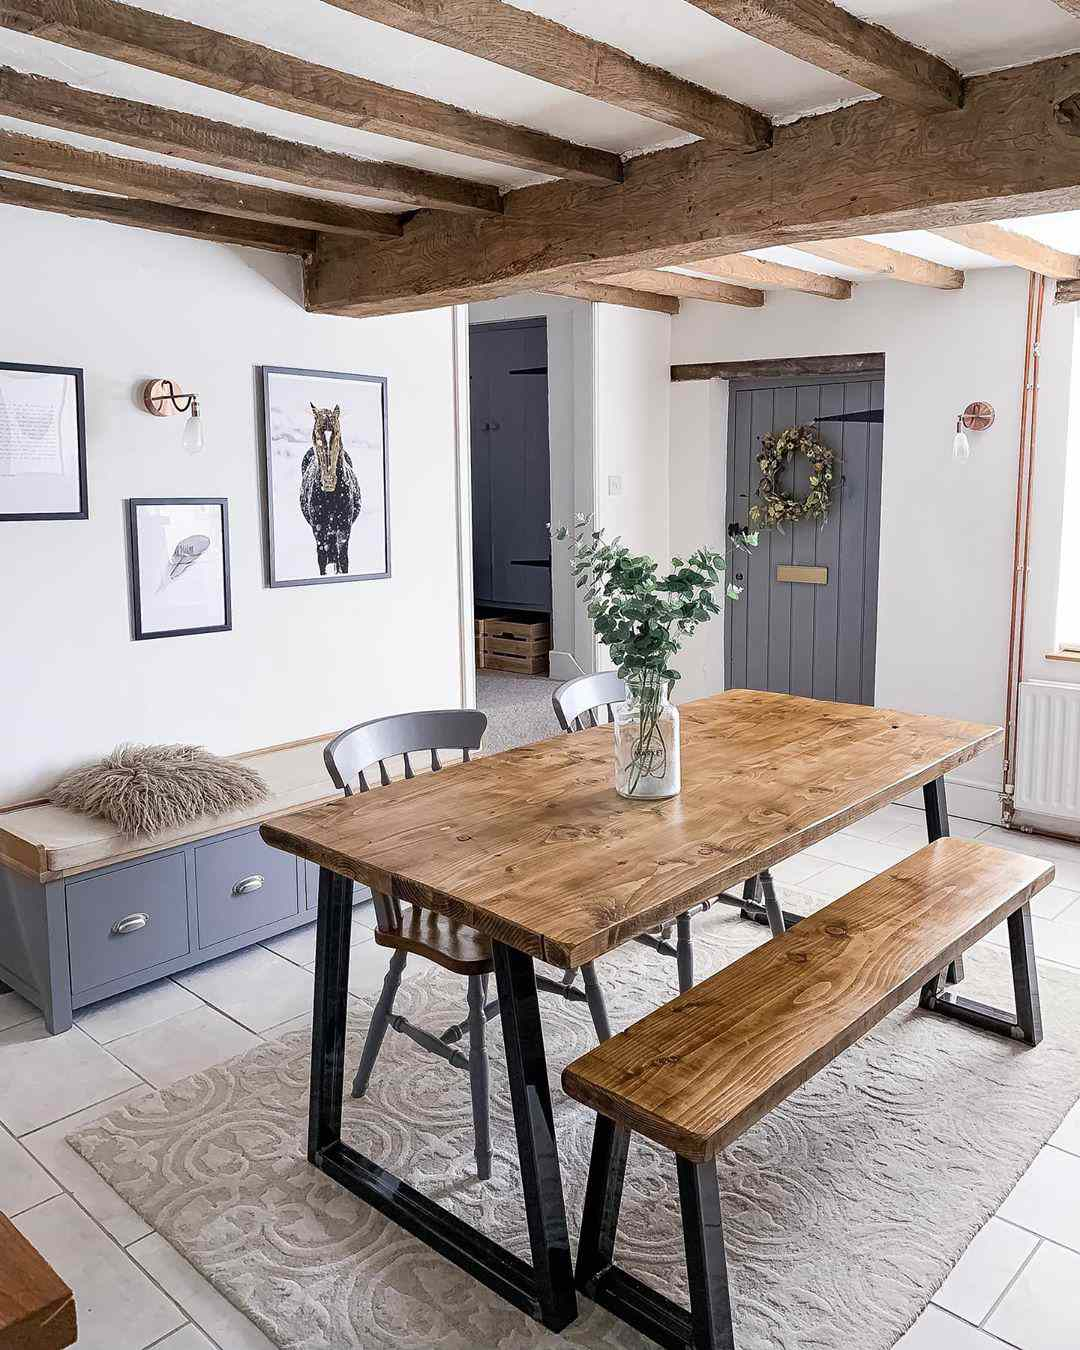 Rustic beans and dining table